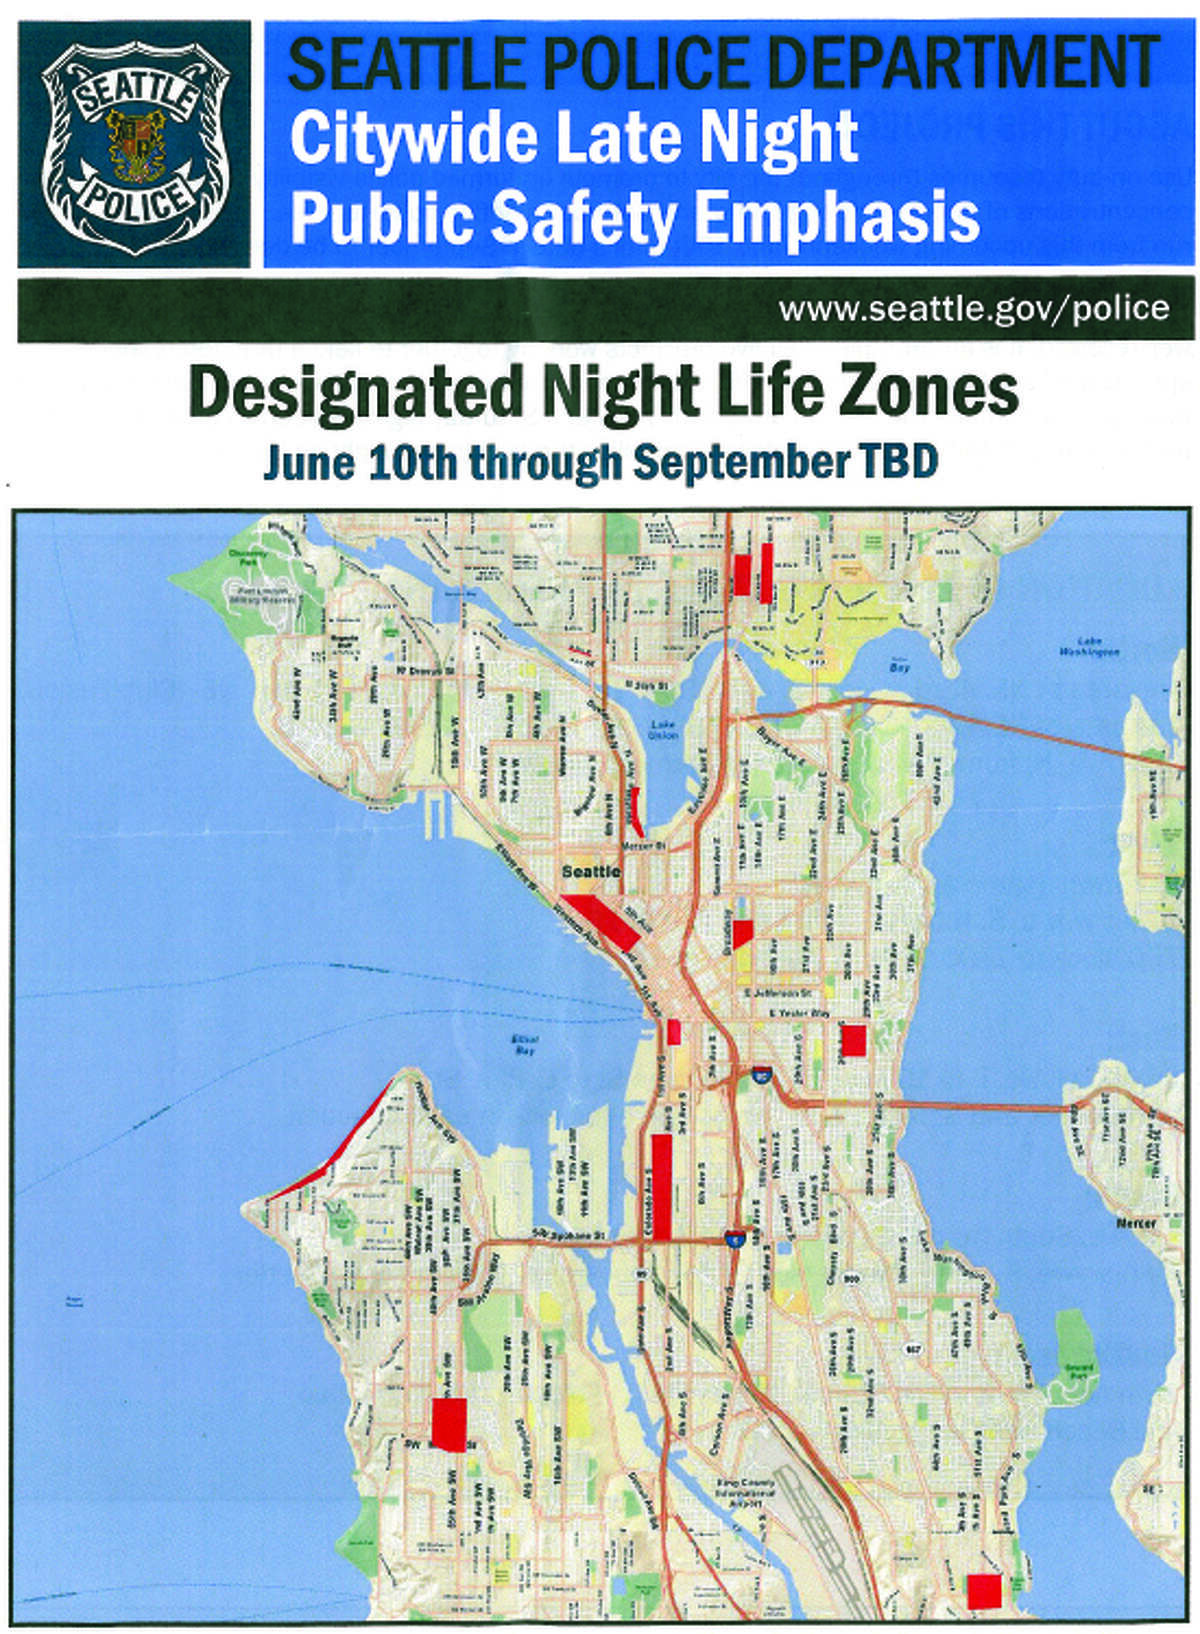 All areas designated by police as Seattle Night Life Zones.